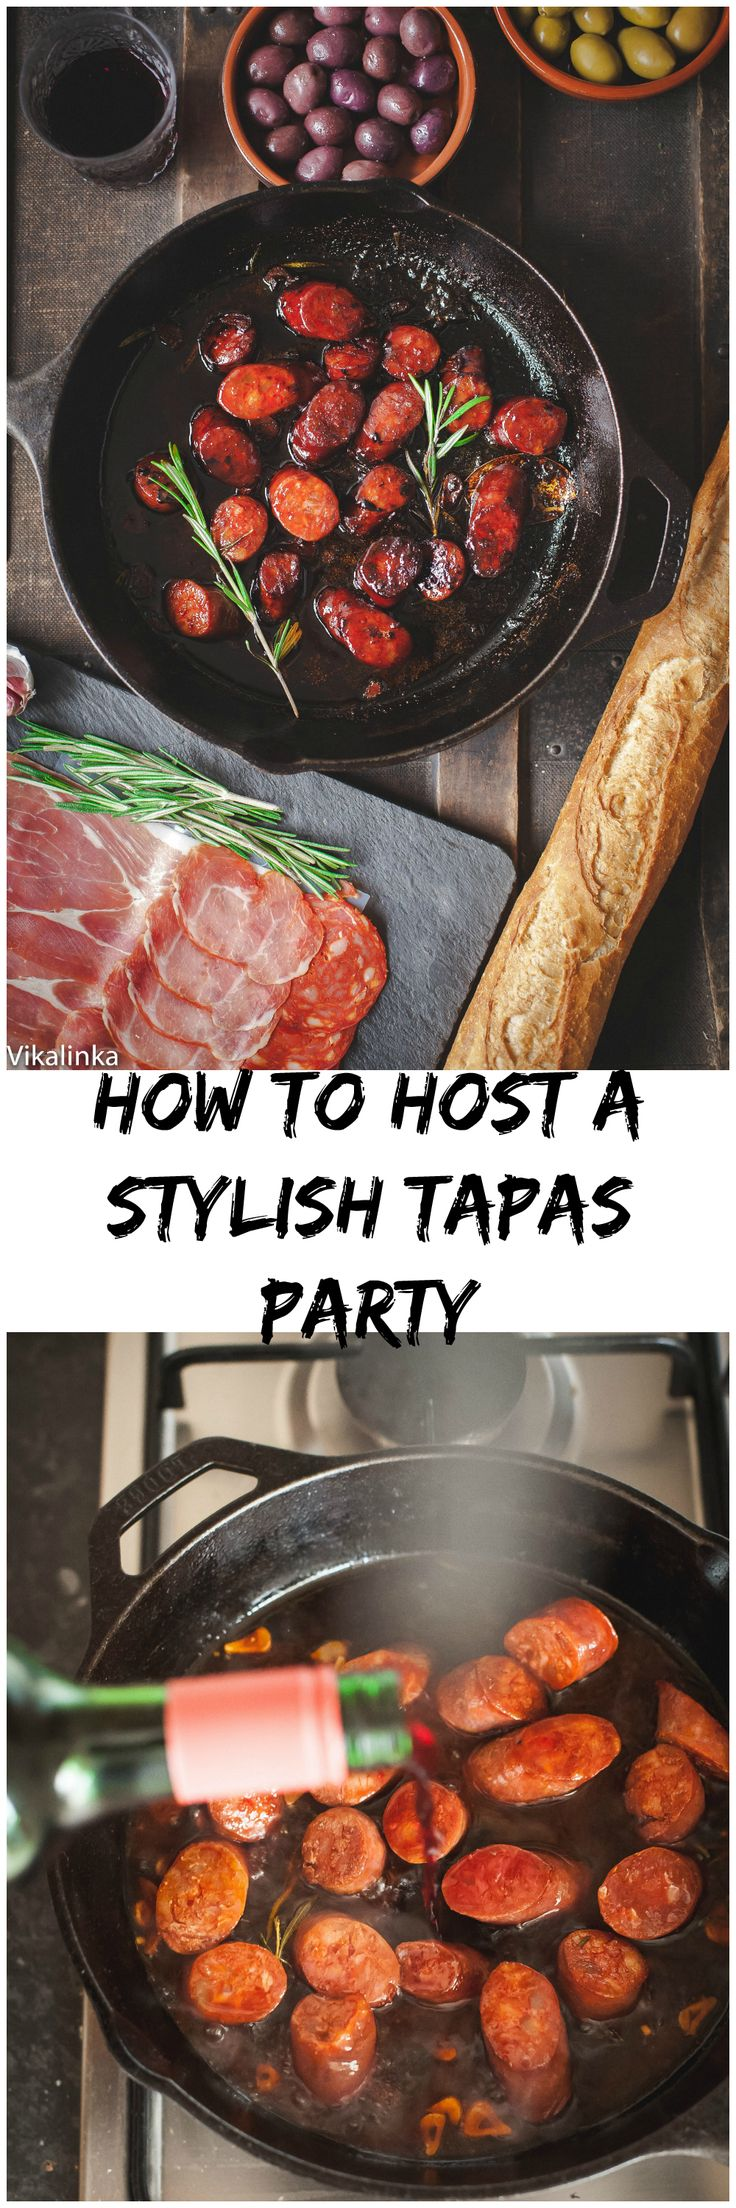 My FAVORITE Recipes: How to Throw a Wine and Tapas Party - Vikalinka